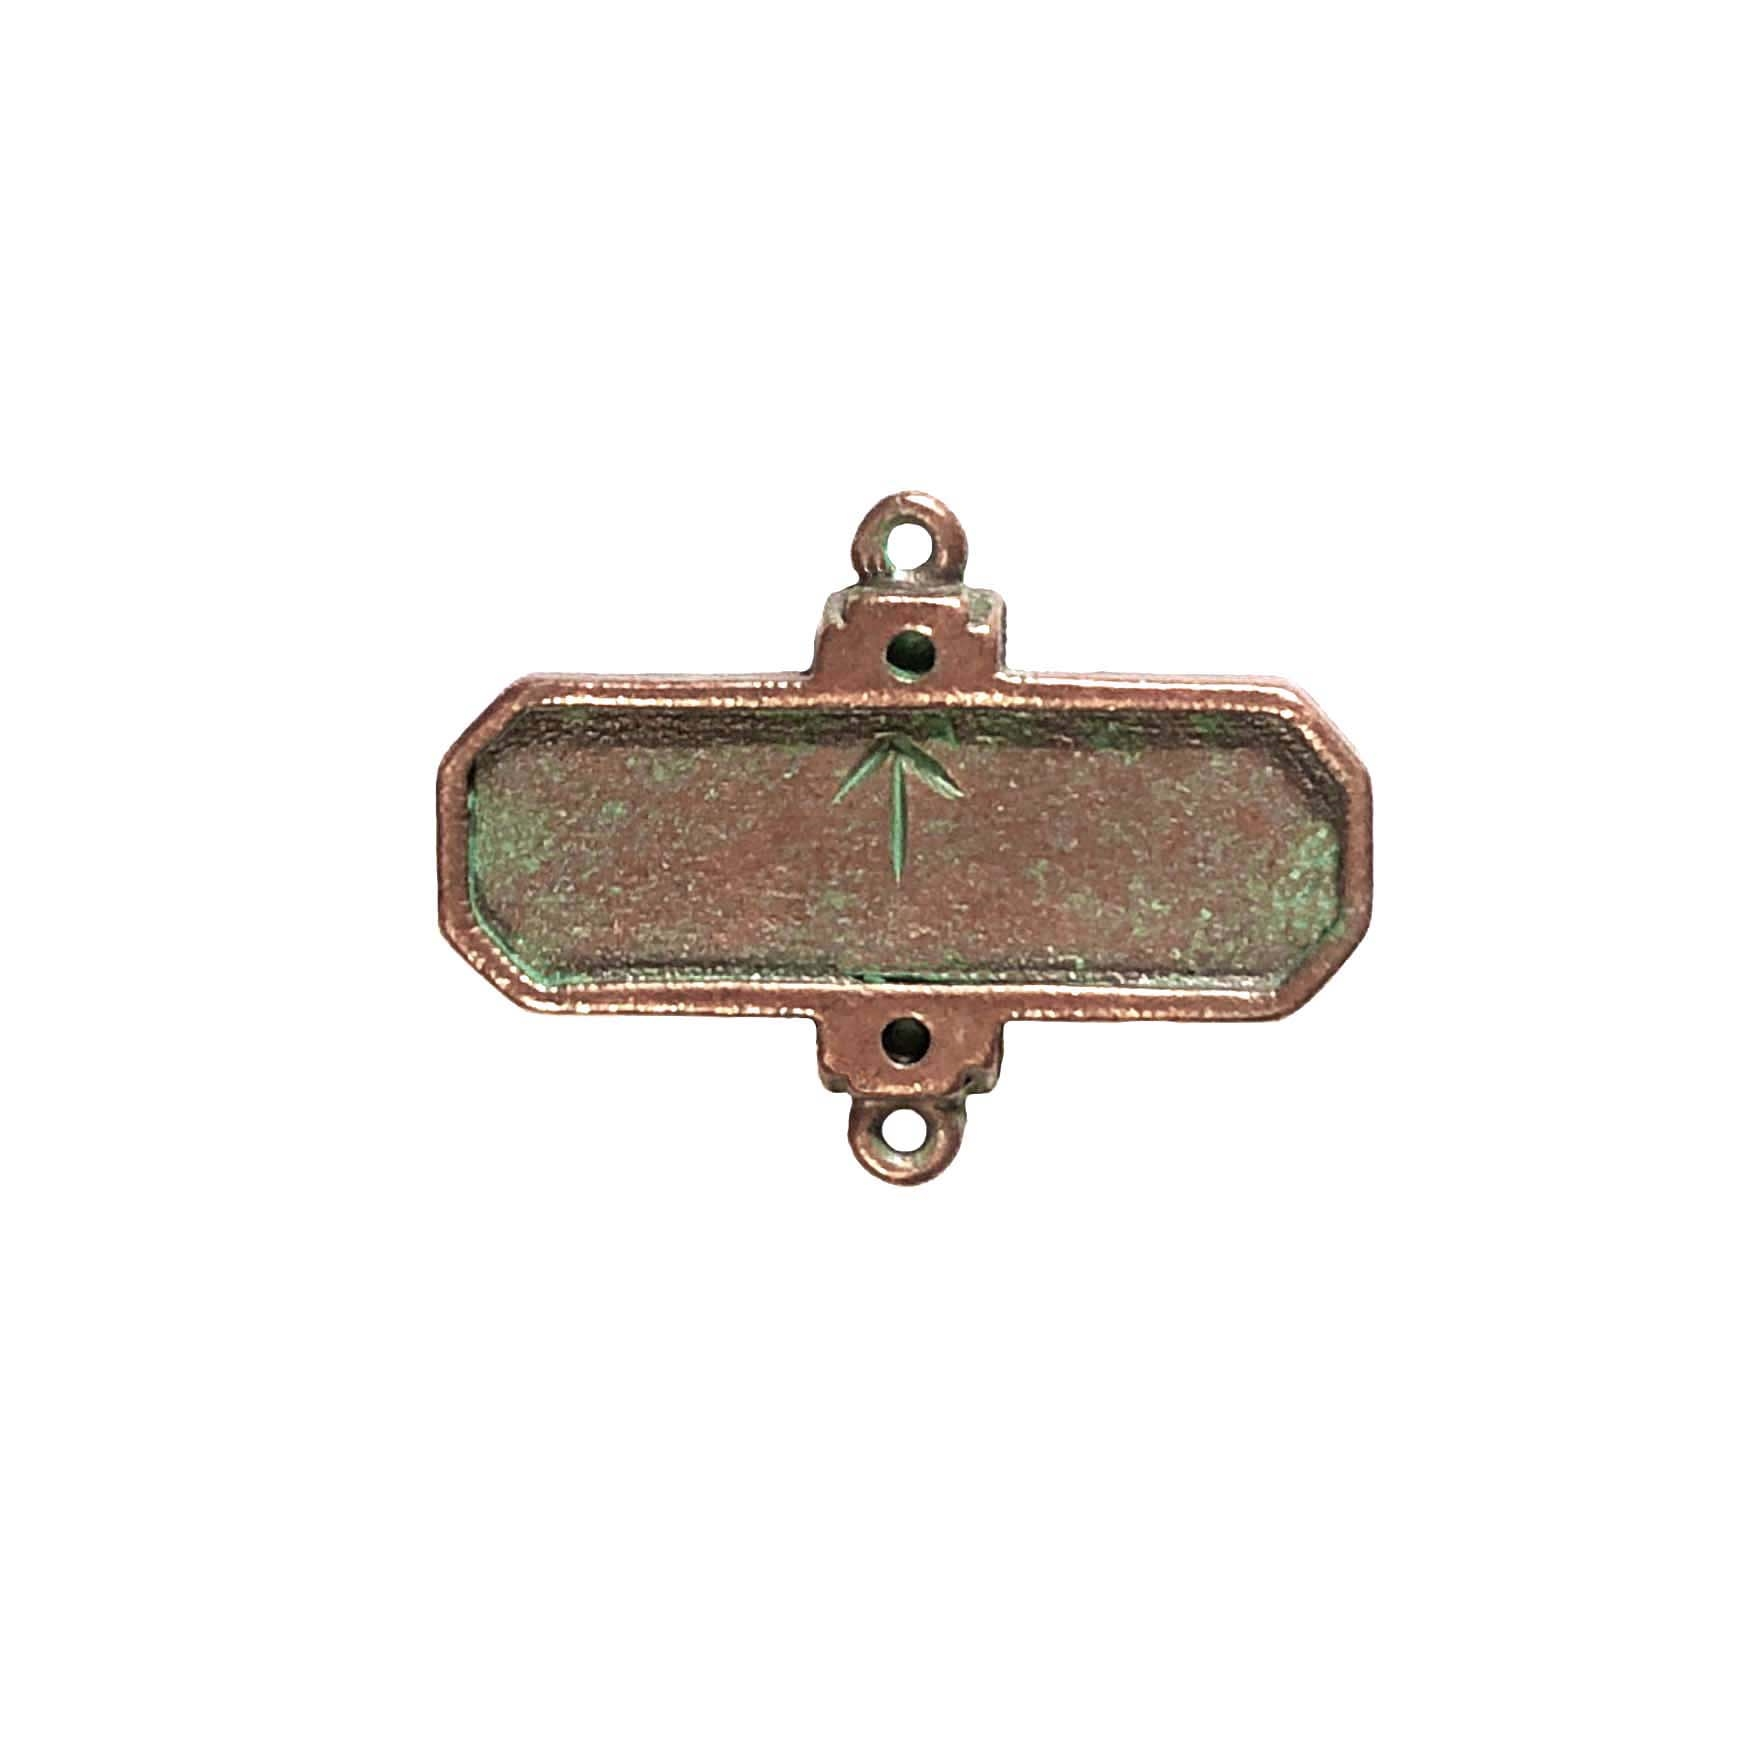 rectangle bezel connector, weathered copper pewter, B'sue by 1928, jewelry connector, bracelet making, nickel free, lead free pewter, green patina, us made, designer jewelry, vintage jewelry supplies, 1928 Jewelry, B'sue Boutiques, 20x26mm, mount, 0308